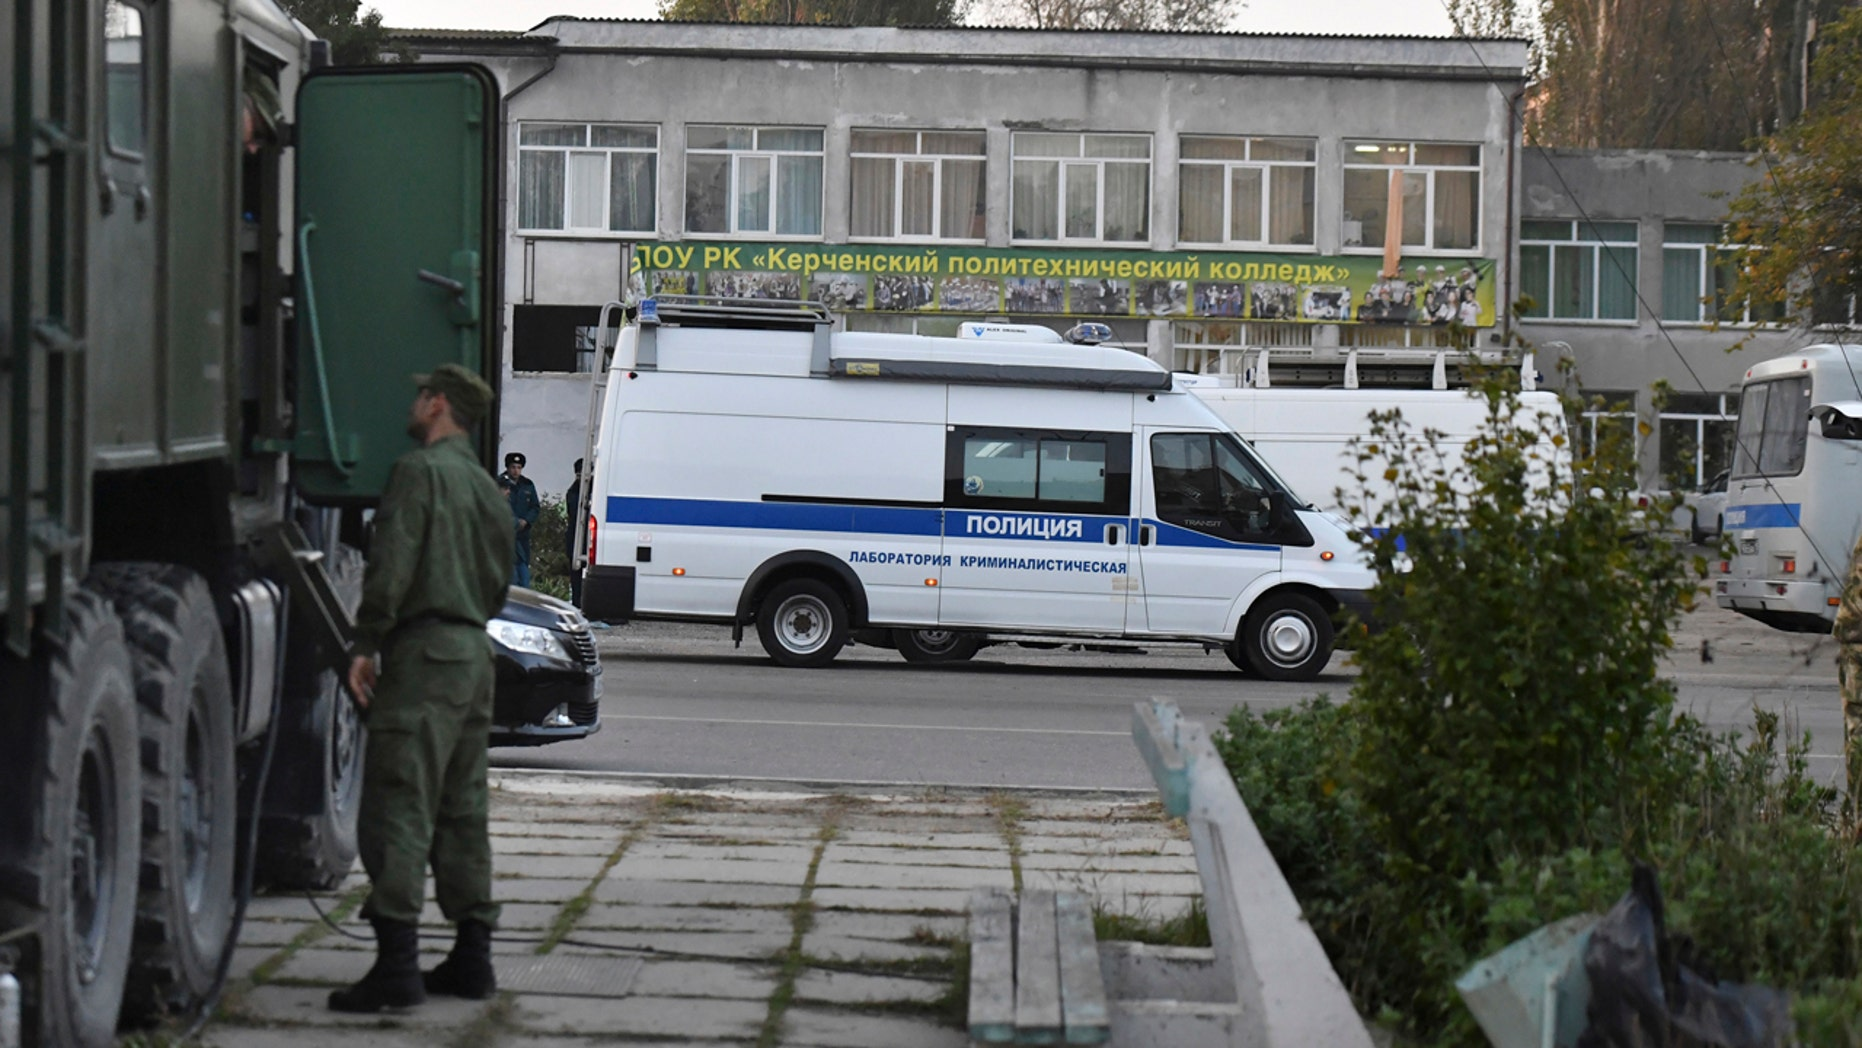 Police vehicles are parked near a vocational college in Kerch, Crimea, Thursday, Oct. 18, 2018.